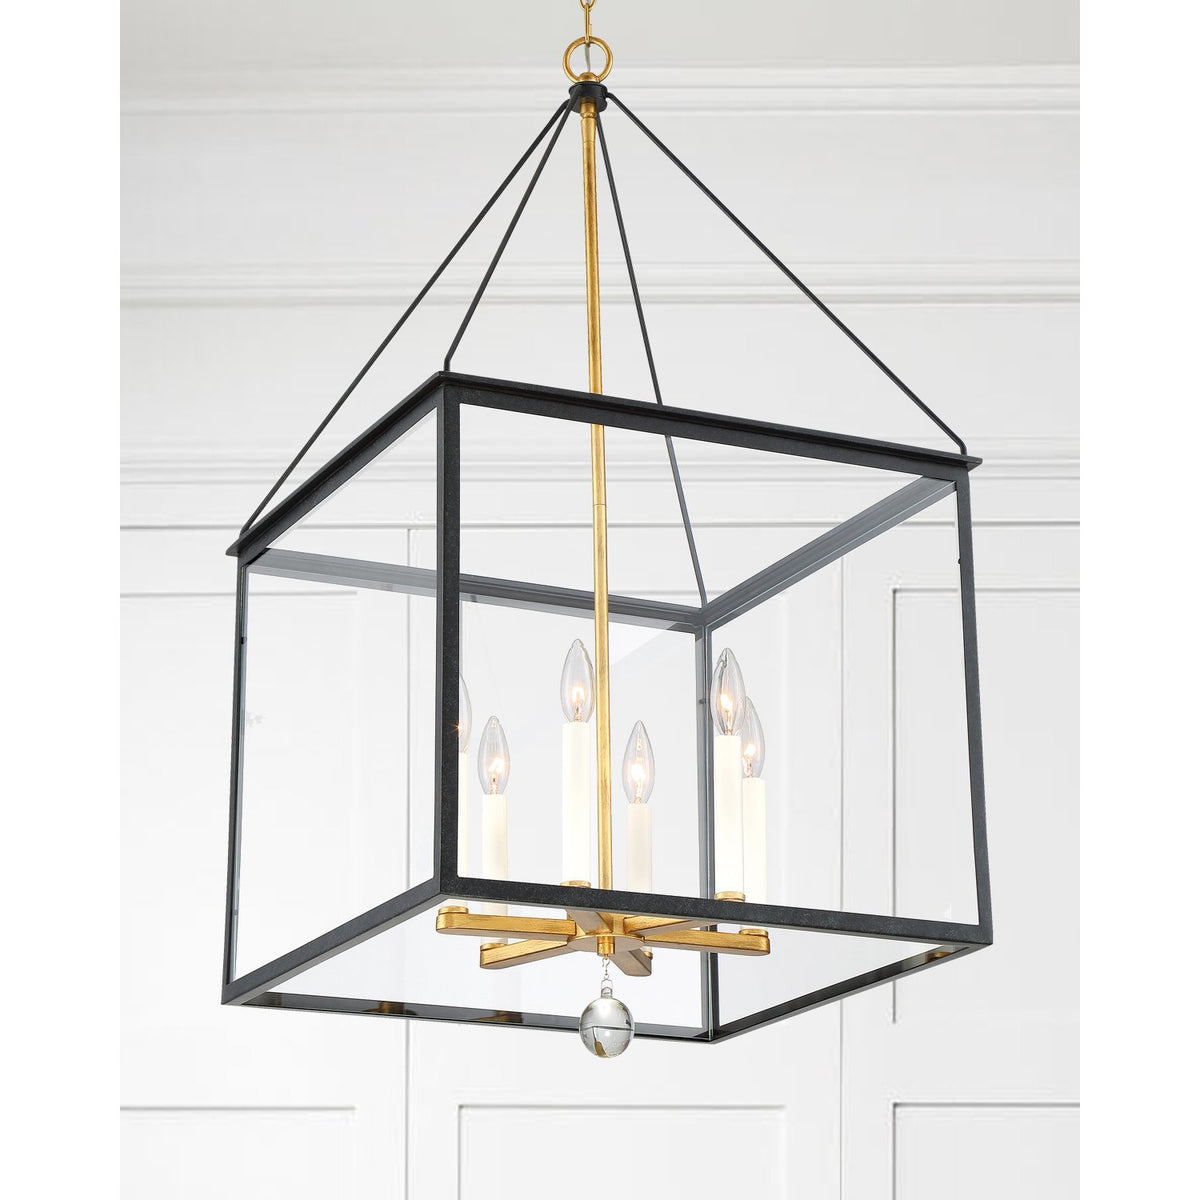 Crystorama - WES-9908-BK-GA - Six Light Lantern - Weston - Black / Antique Gold